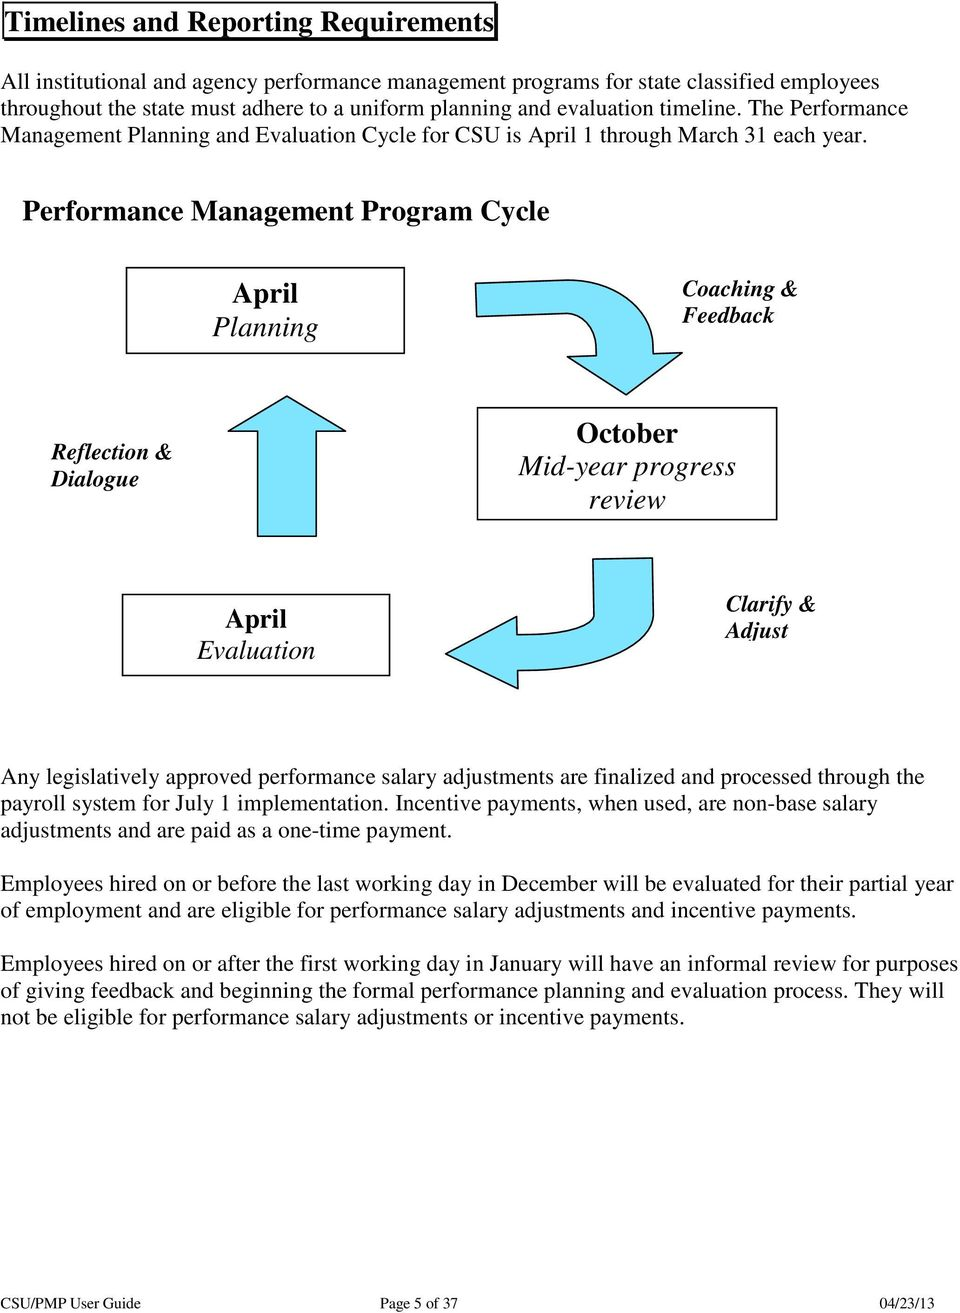 Performance Management Program Cycle April Planning Coaching & Feedback Reflection & Dialogue October Mid-year progress review April Evaluation Clarify & Adjust Any legislatively approved performance